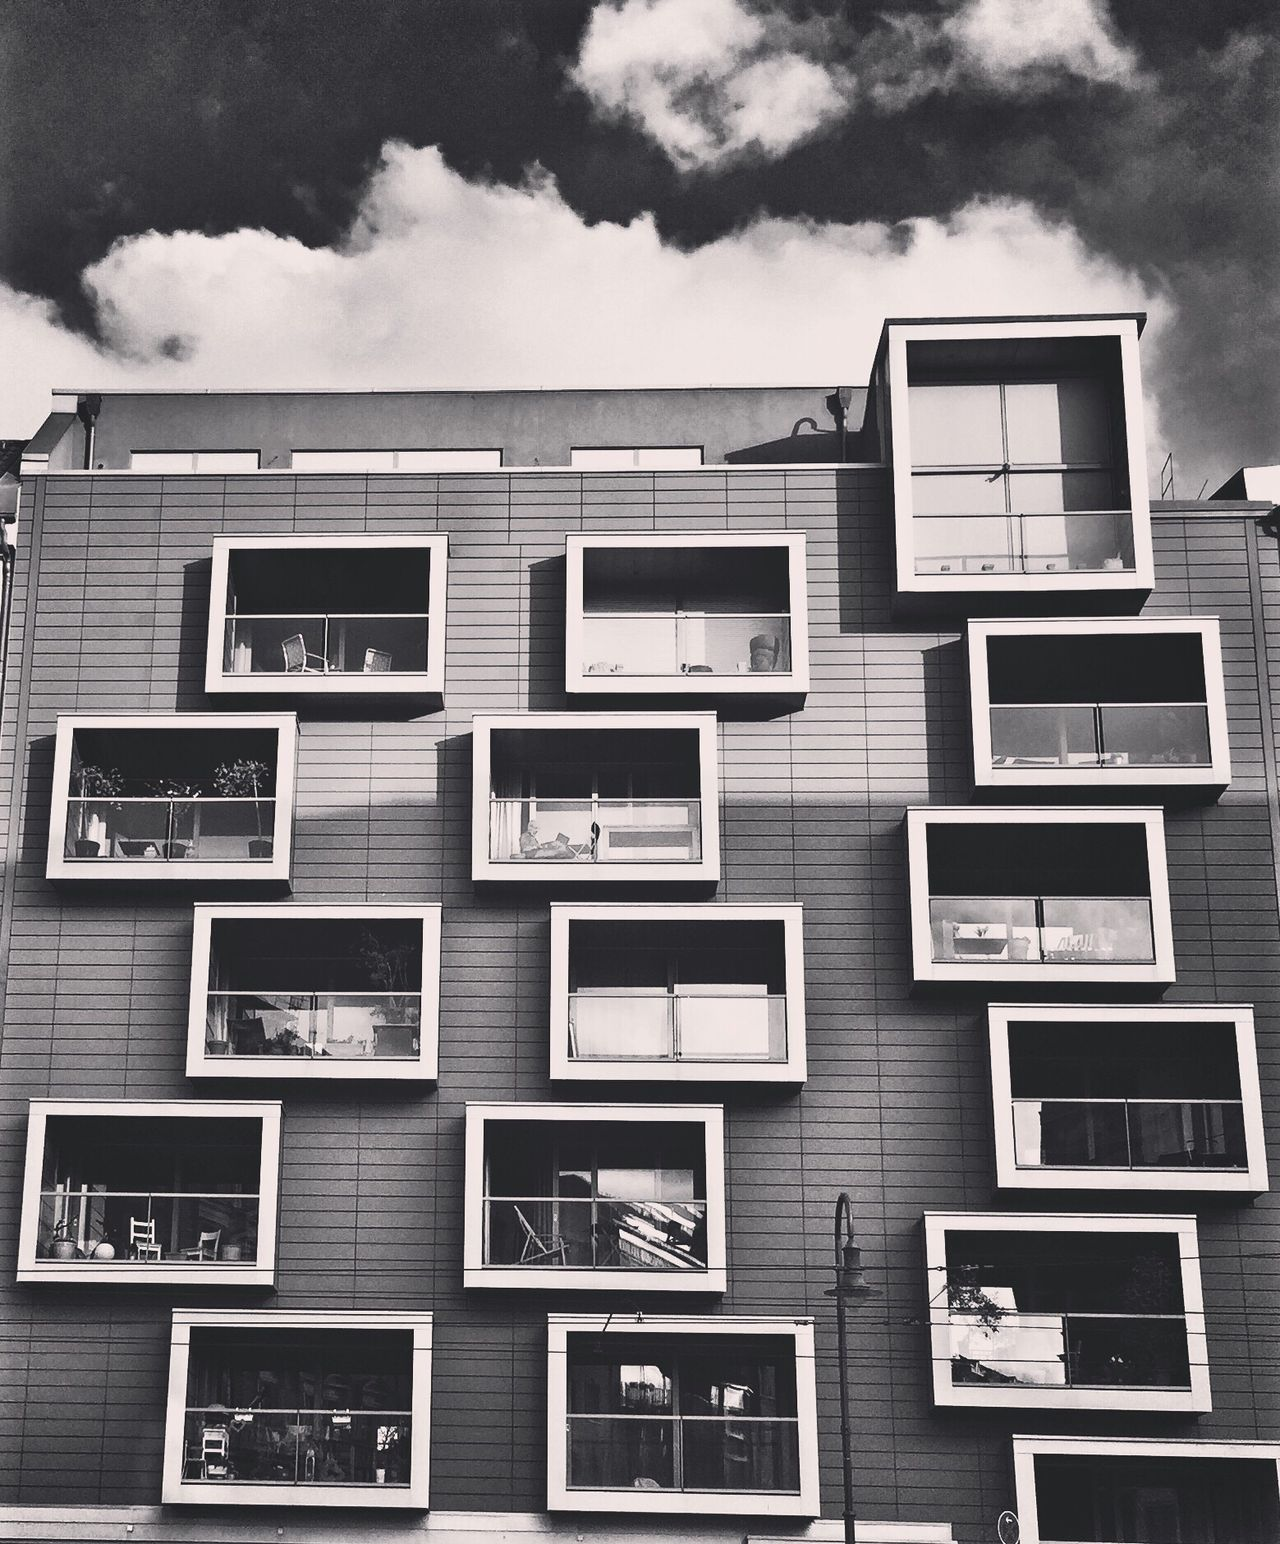 Building Exterior Architecture Window Outdoors No People Built Structure Residential Building Sky Balcony Cloud - Sky Walking Around Streetphotography Berlin Photography Berlin VSCO Cam Instatagapp_instagood_iphonesia_photooftheday_instamood_igers_instagramhub_picoftheday_instadaily_bestoftheday_igdaily_webstagram_instagramers_statigram_igaddict_blackandwhite_iphoneartists_iphoneonly_jj_forum_iphonography_instagrammers_instaaddict_ Berlin Street Photography Gernany Blackandwhite Architecture_collection Black And White Balcony View Building Architecture My Fuckin Berlin